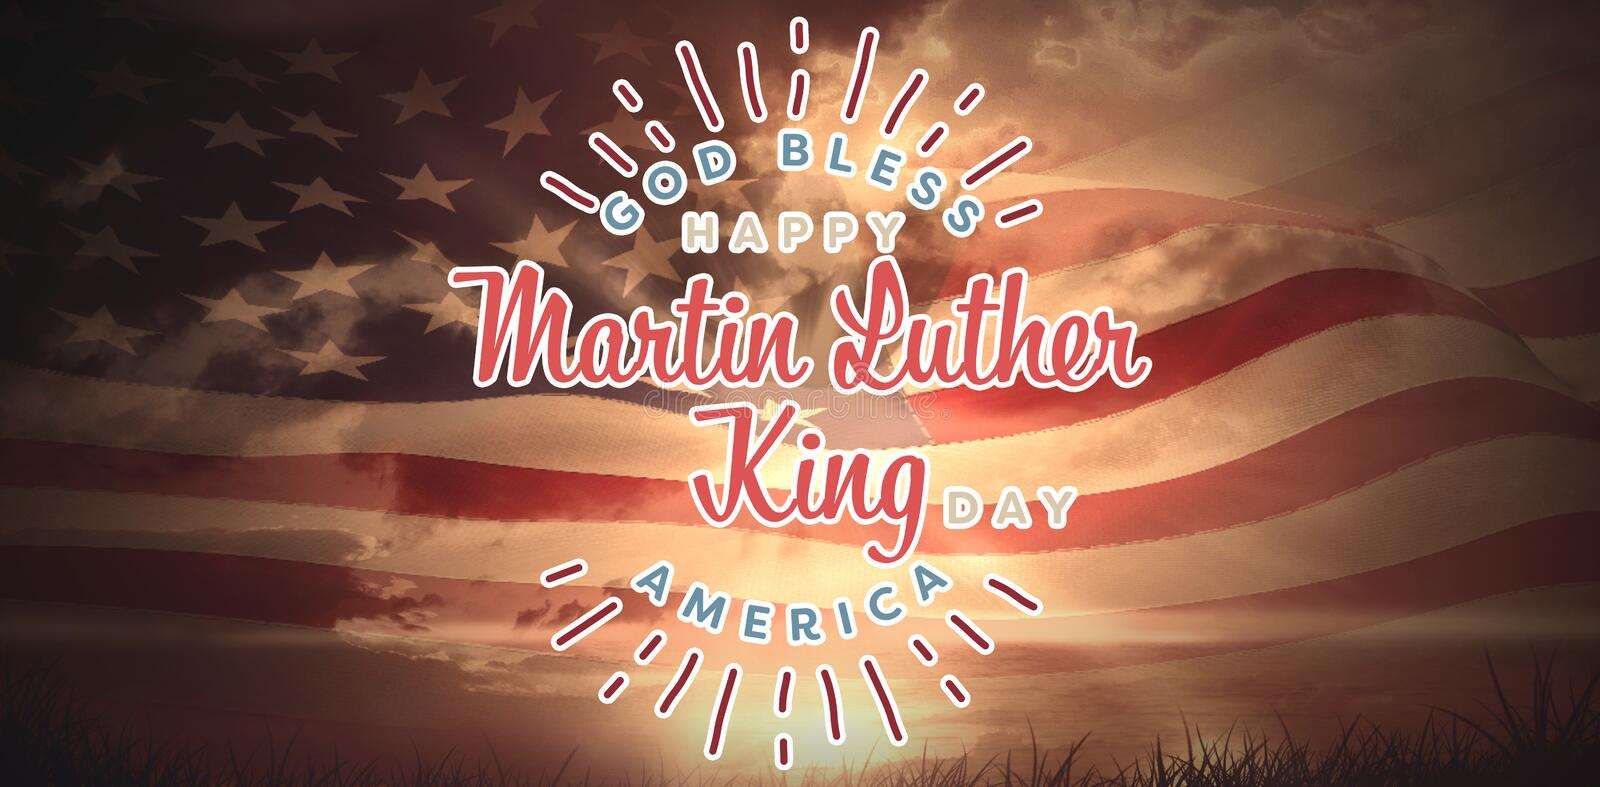 Composite image of happy martin luther king day, god bless america. Happy Martin Luther King day, god bless america against composite image of digitally royalty free stock image